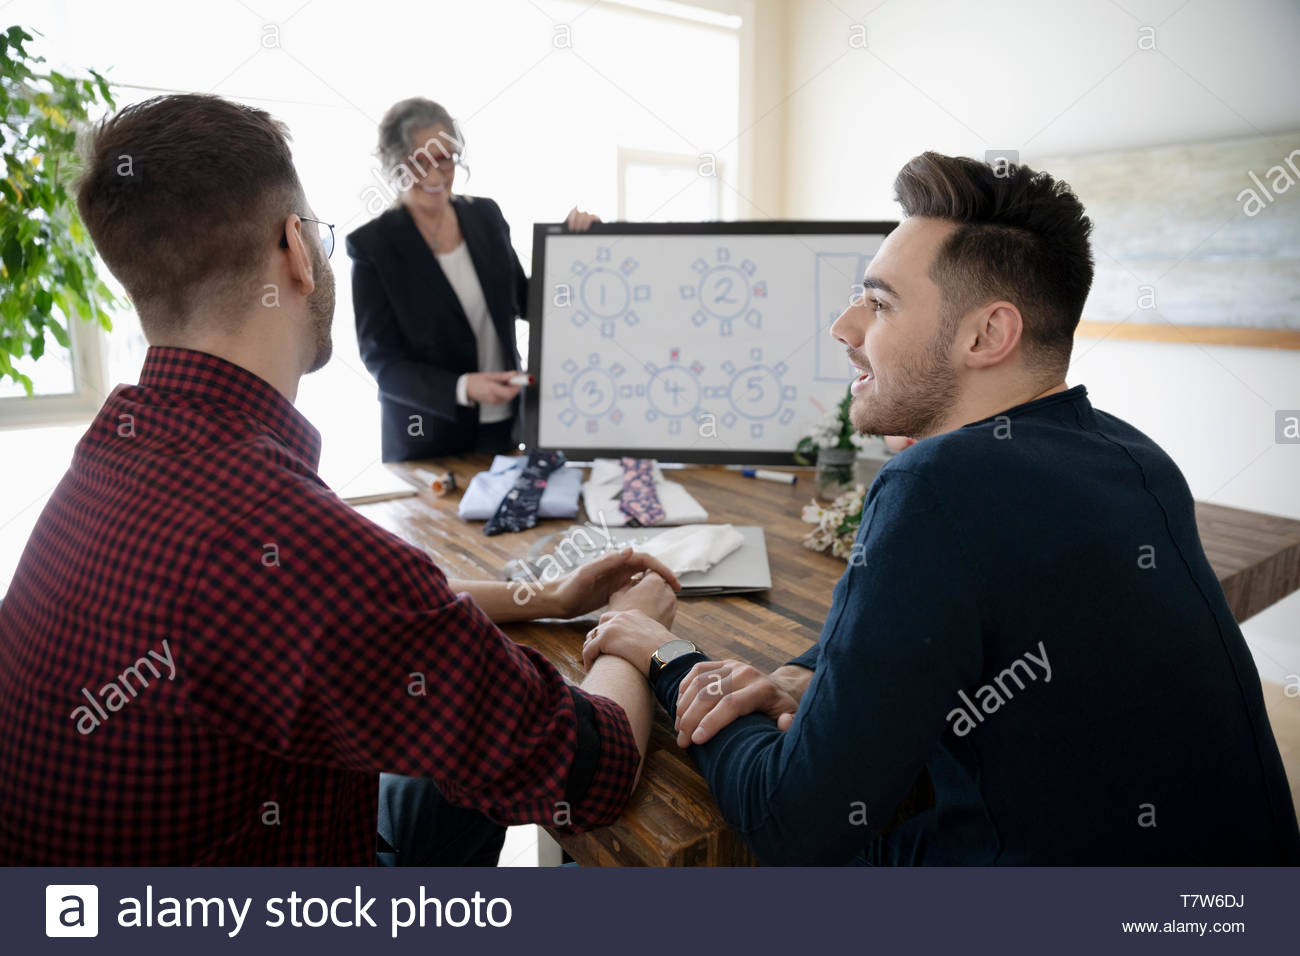 Affectionate gay male couple meeting with wedding planner, deciding on seating arrangements - Stock Image